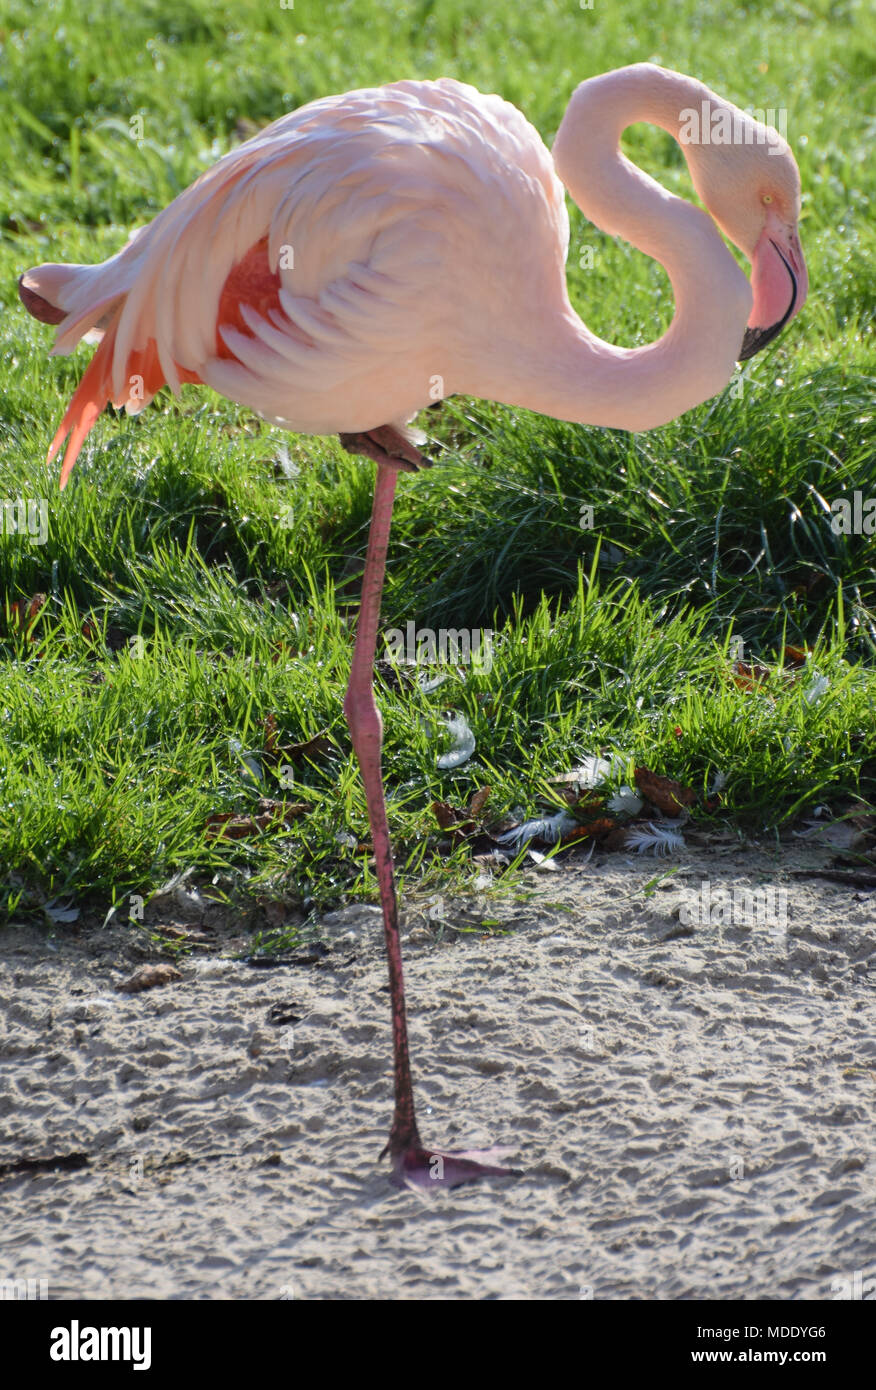 A Greater Flamingo standing on one leg - Stock Image